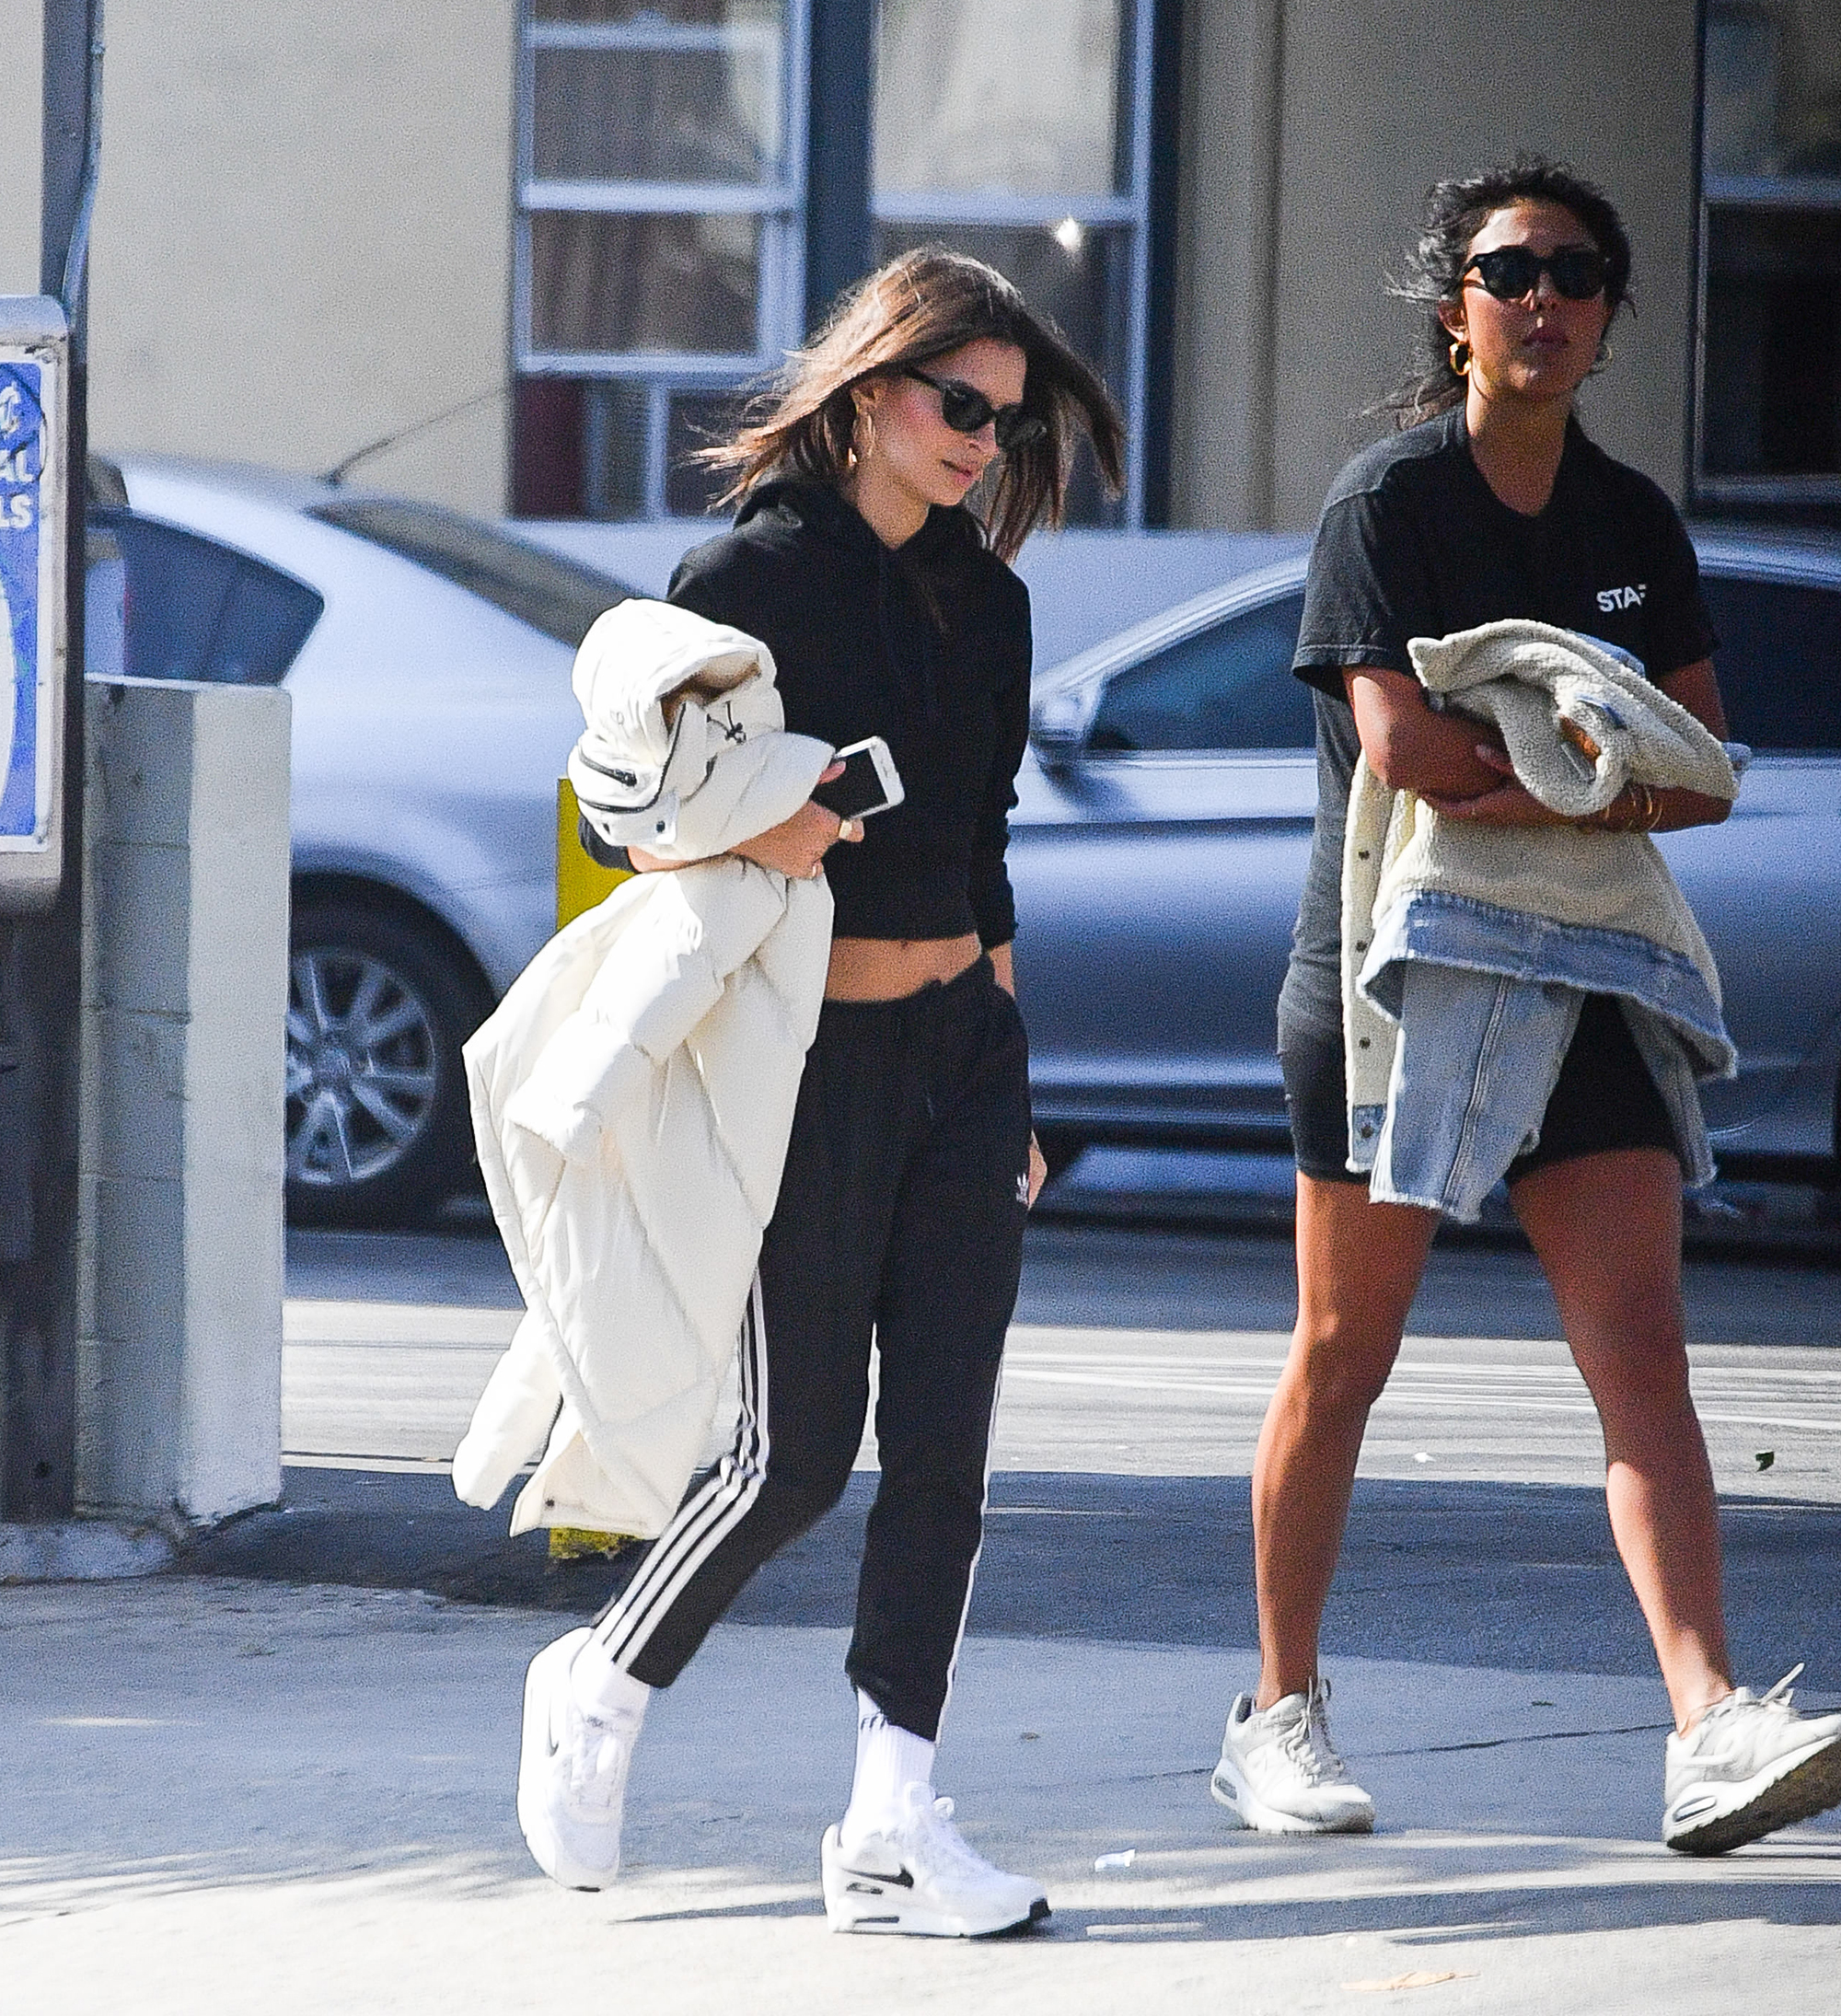 """Emily Ratajkowski abs - """"I don't have a trainer, and I don't really go to the gym. I go on long walks and hikes with my girlfriends,"""" EmRata, with a friend in L.A., also told the Times . """"I'm just not a crazy fitness person. I'm definitely an outlier in the industry."""""""